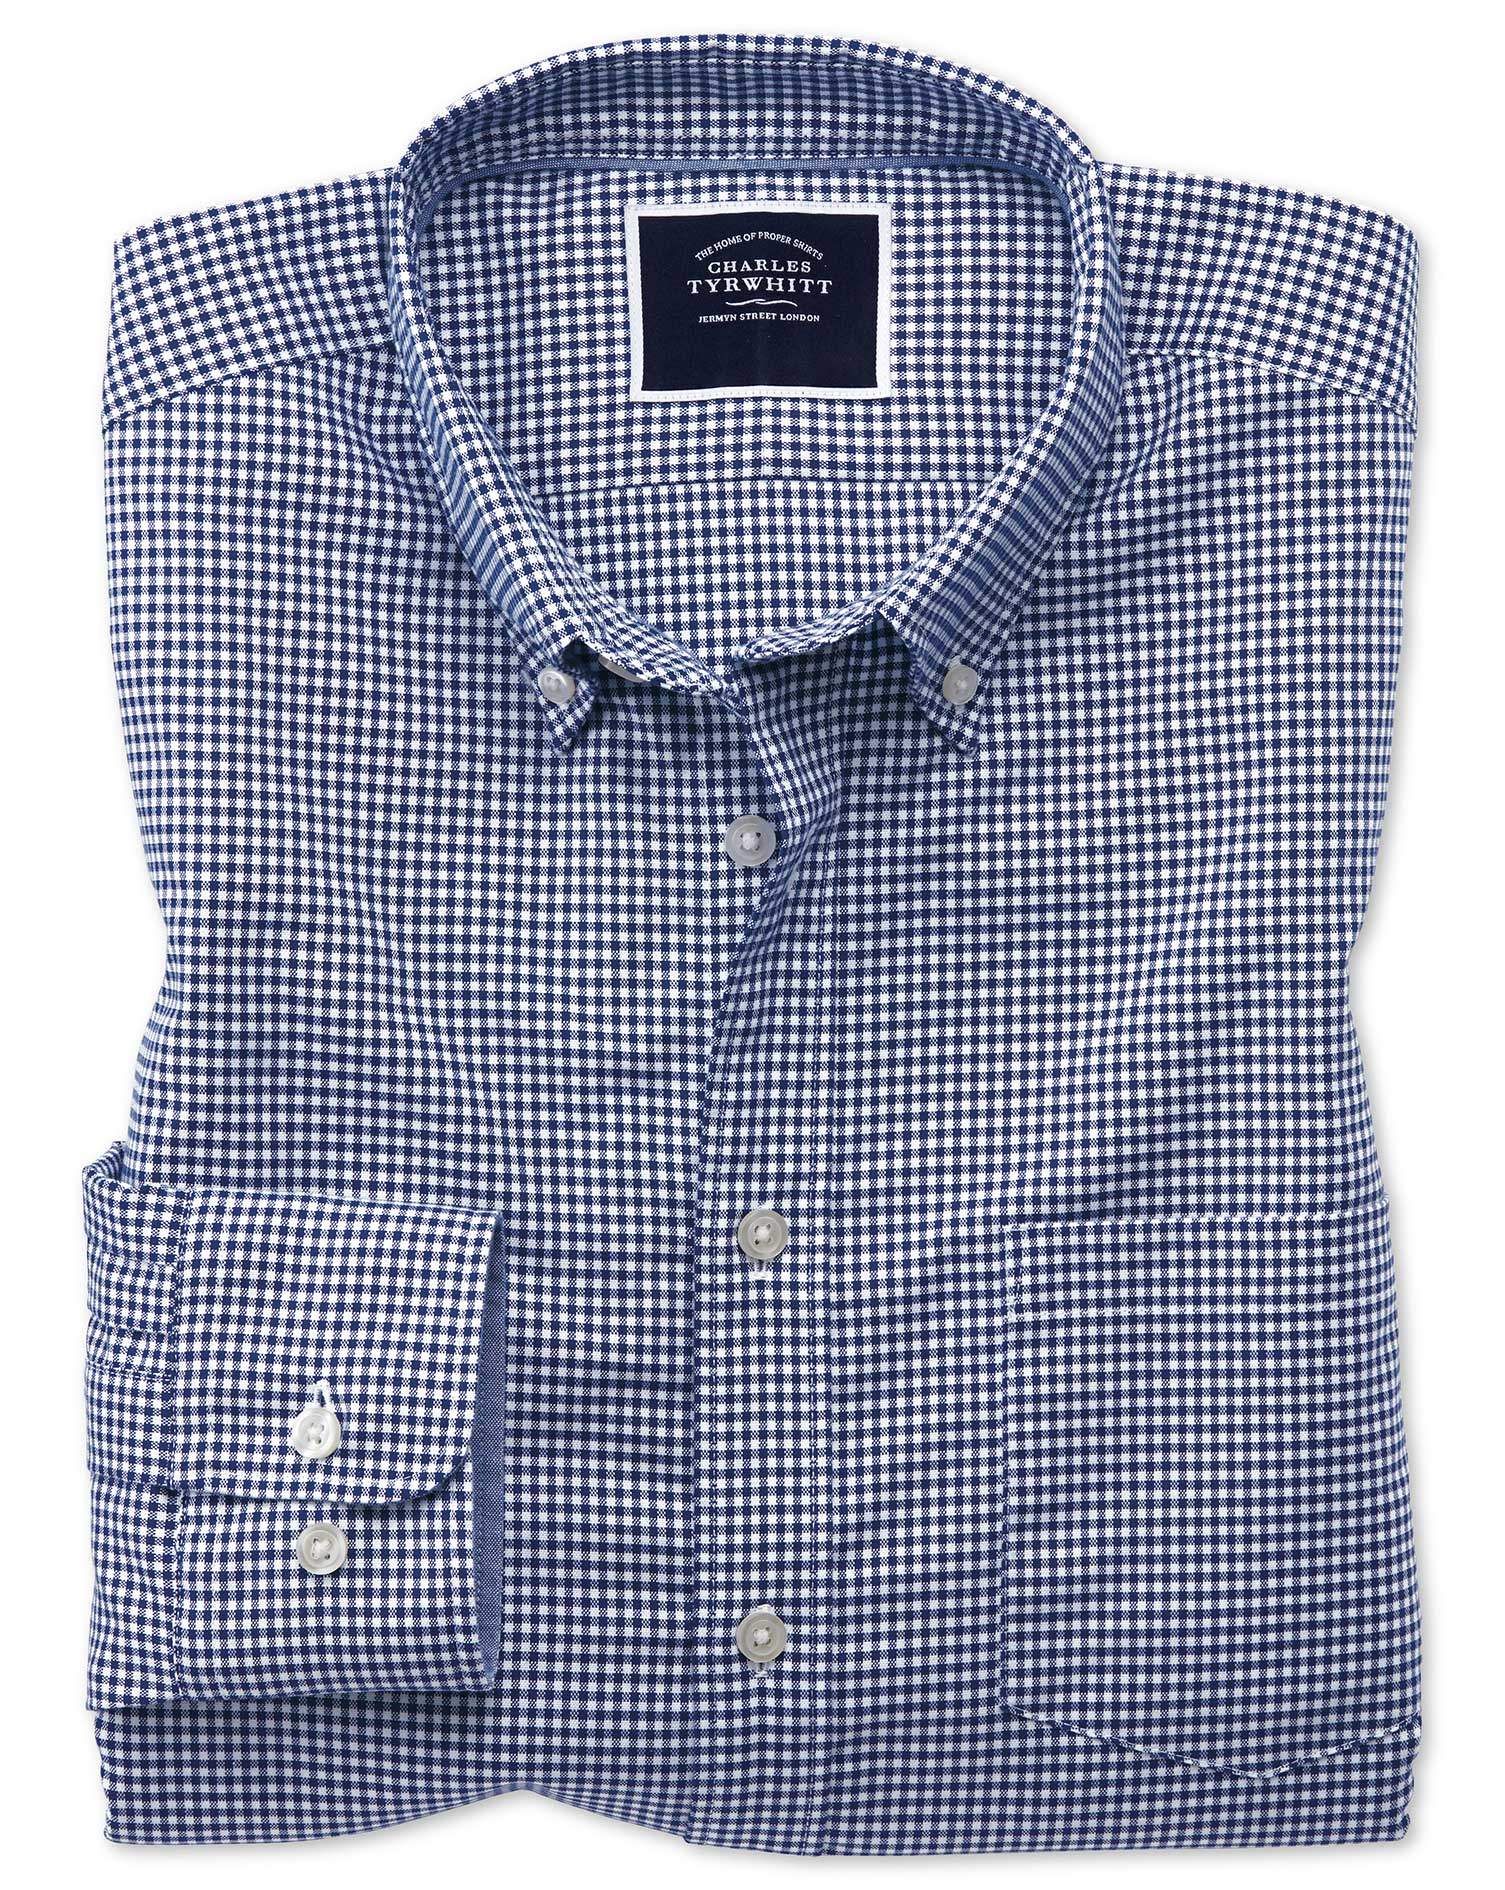 Slim Fit Royal Blue Gingham Soft Washed Non-Iron Stretch Cotton Shirt Single Cuff Size XXL by Charle